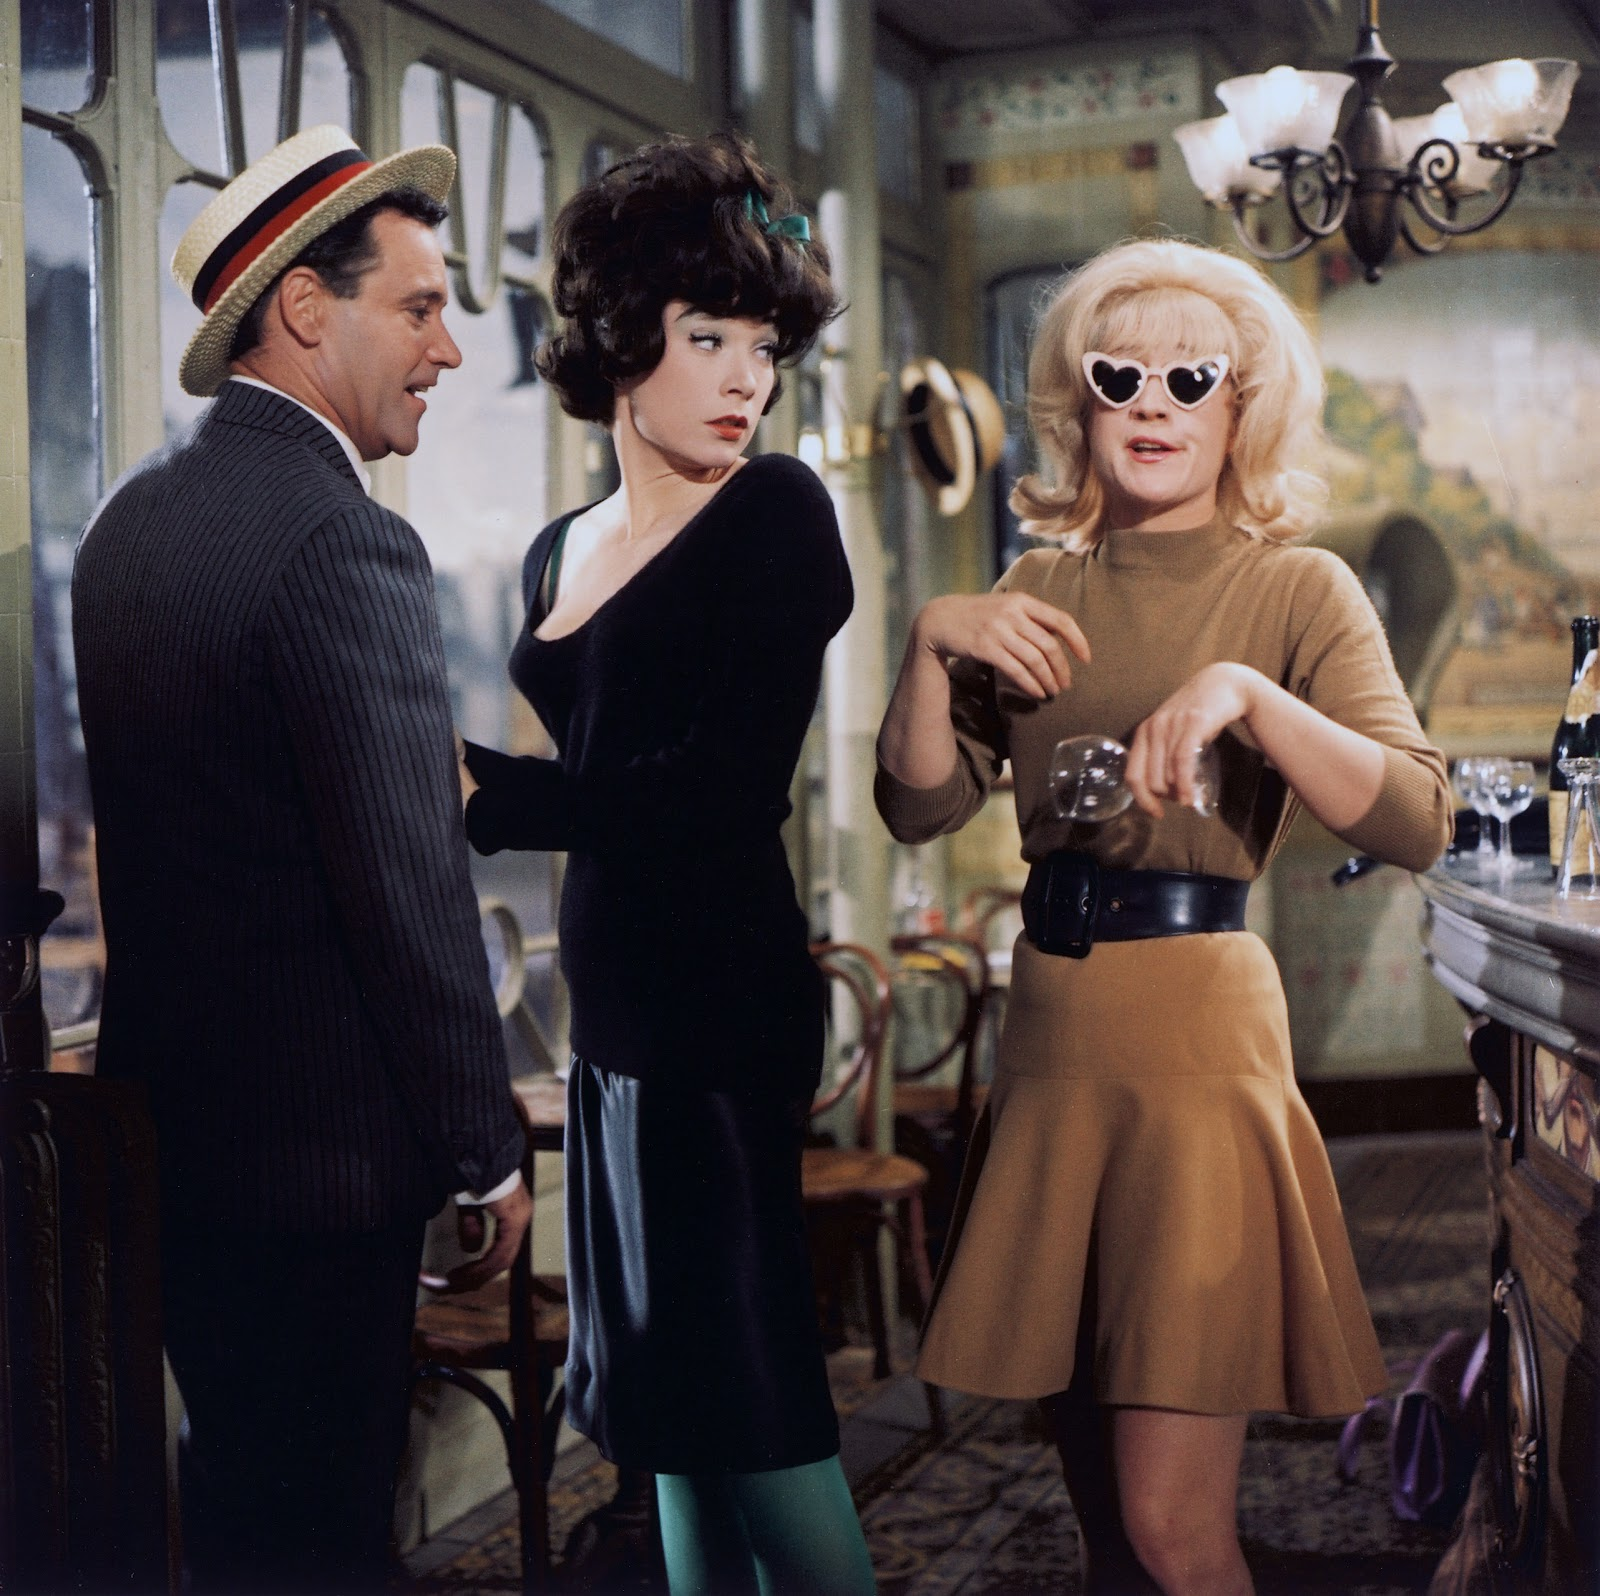 Shirley MacLaine | Biography & Facts | Britannica